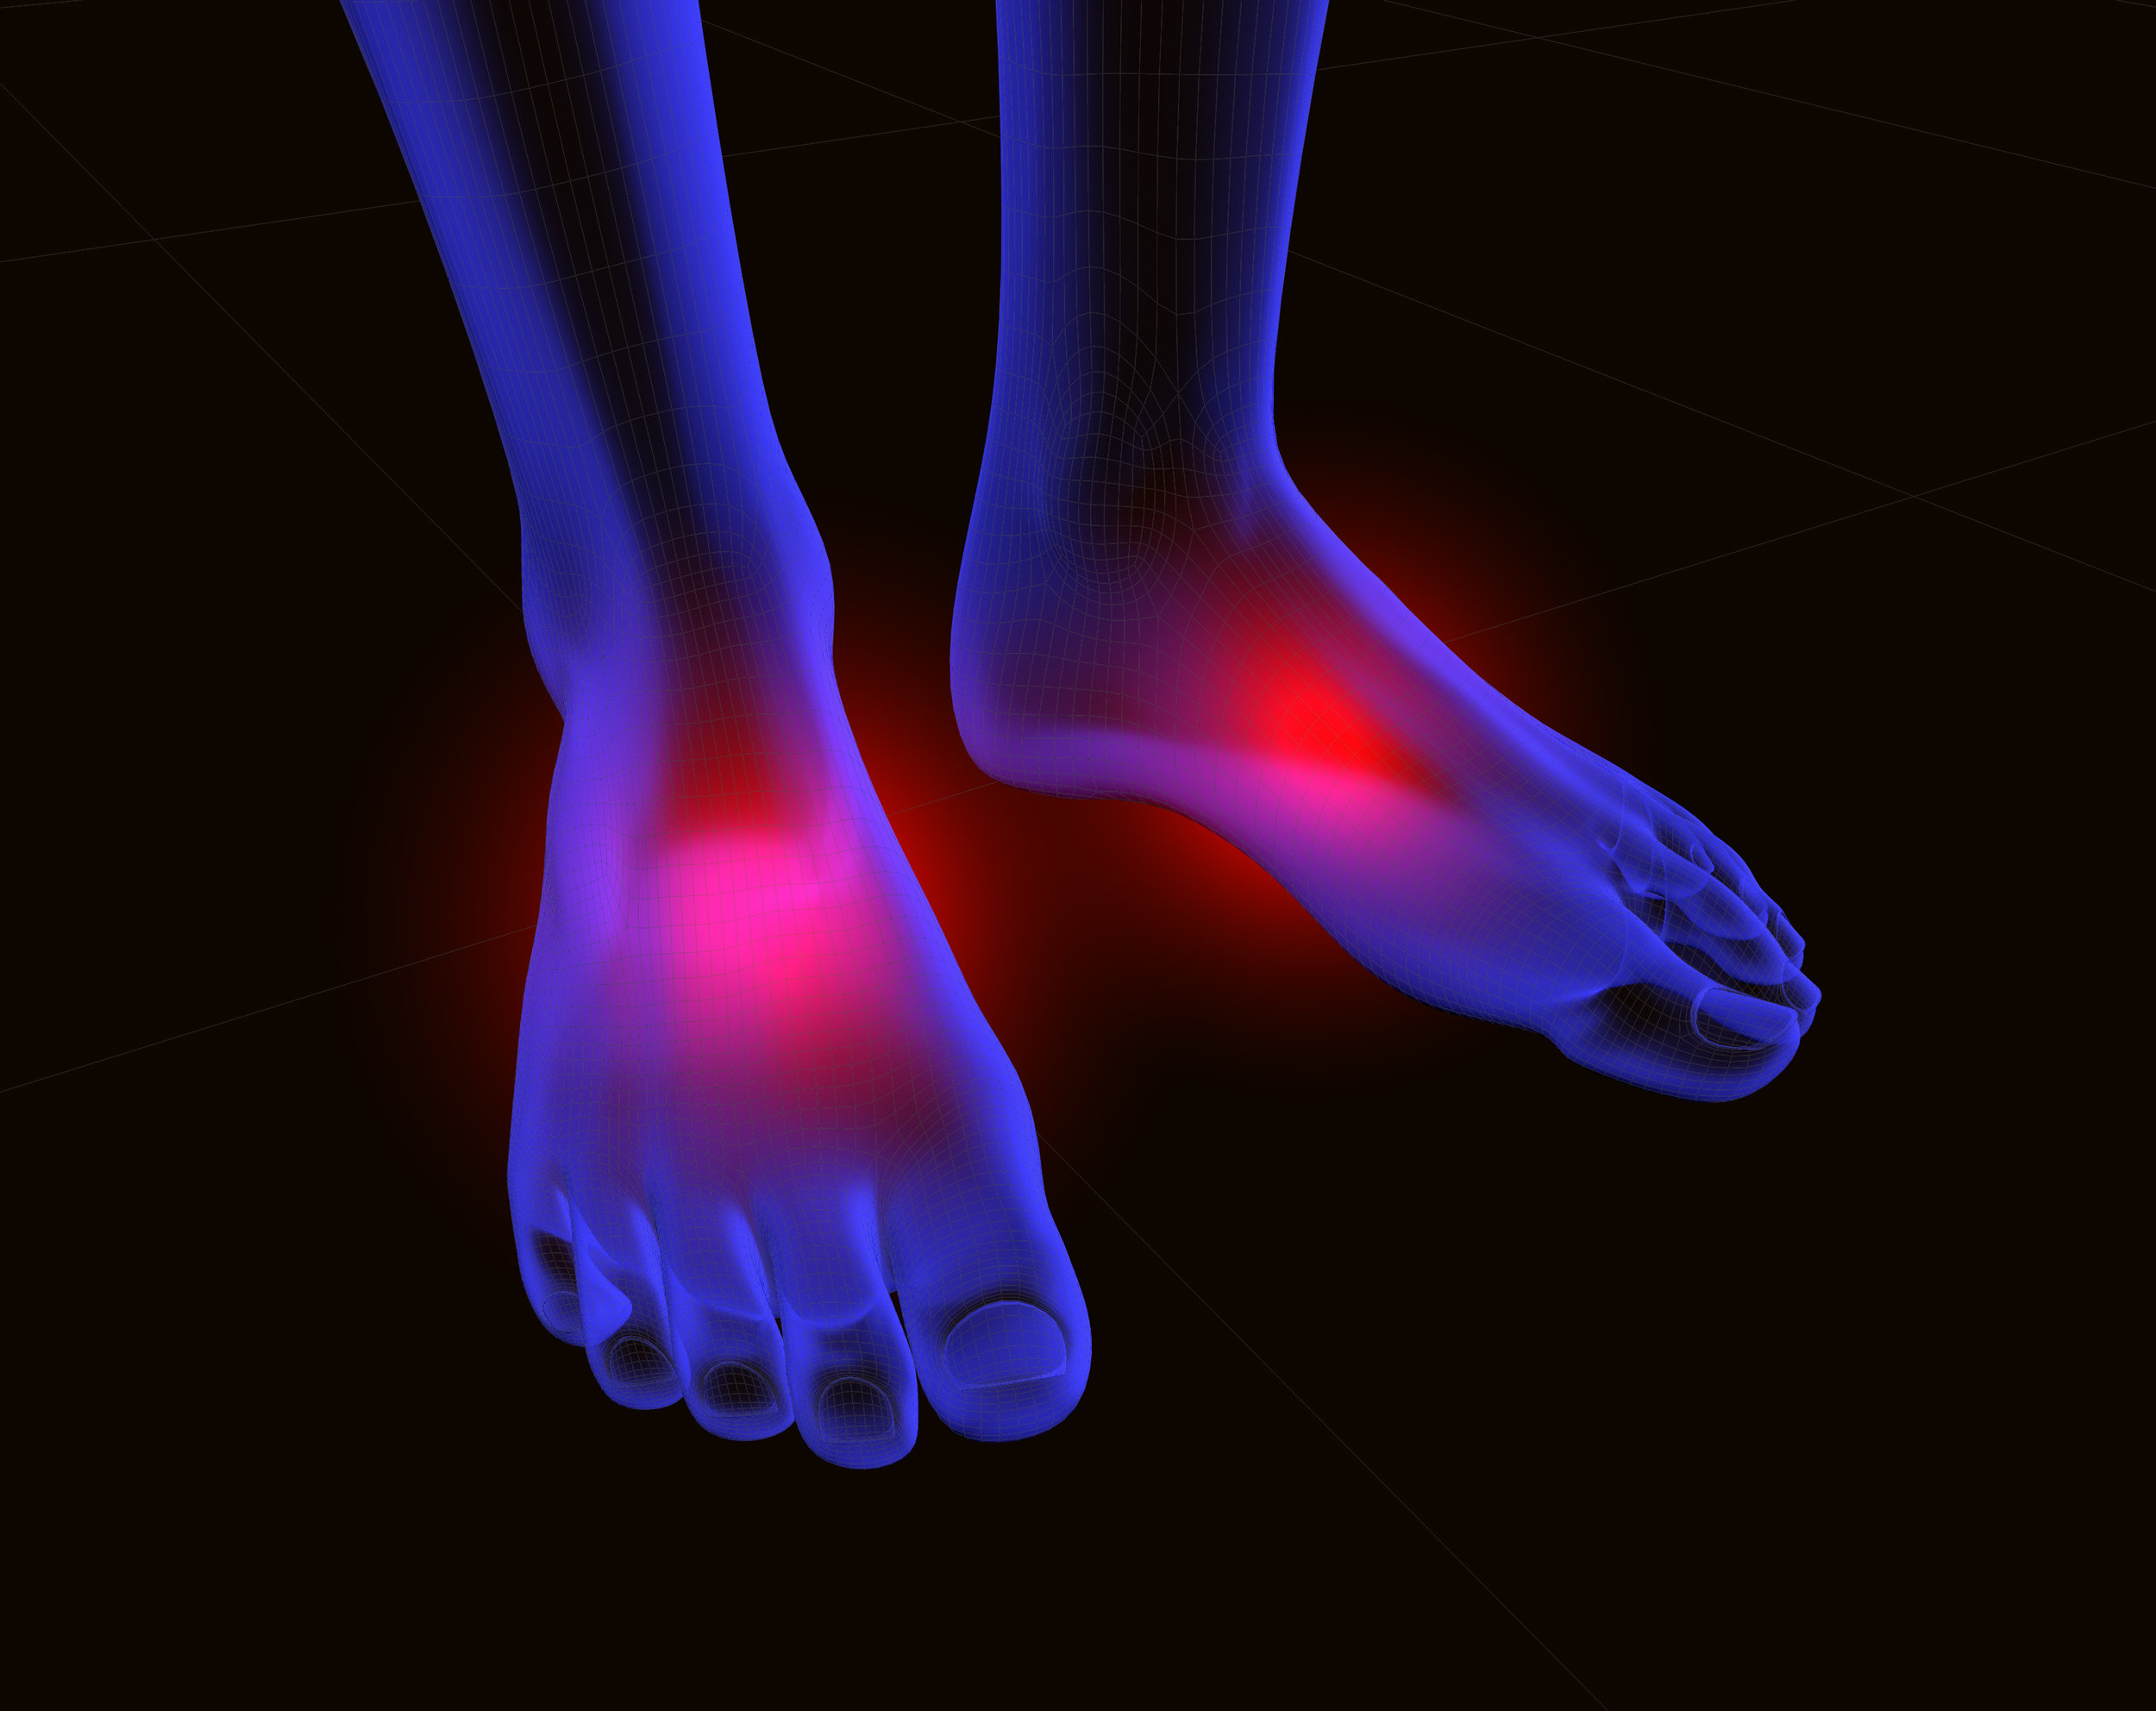 morton's neuroma treatment and pain relief, podiatrists tampa fl